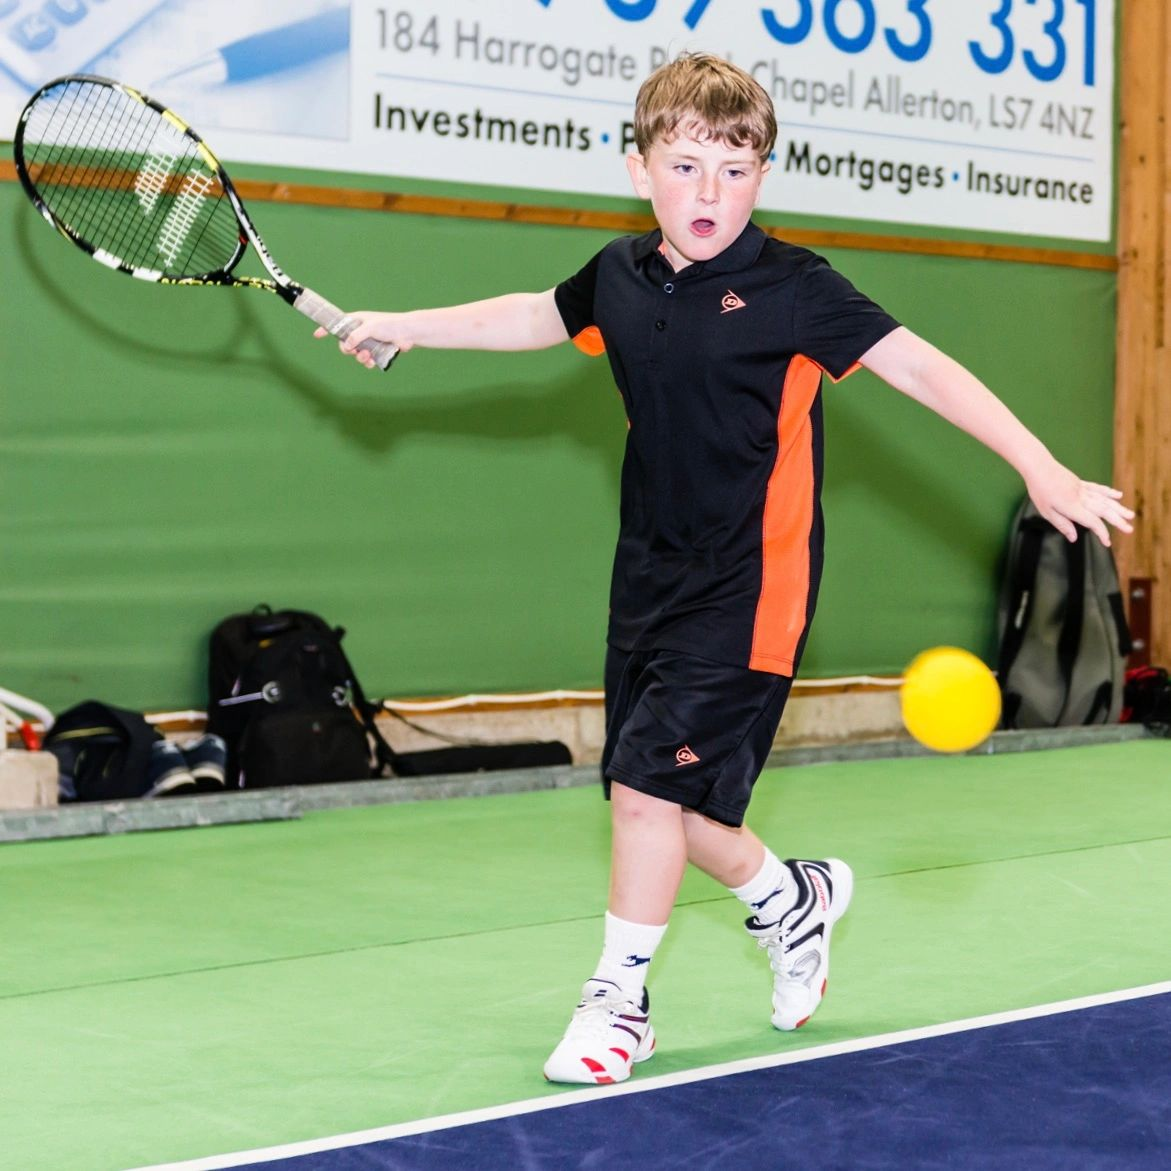 Junior Tennis hitting a tennis ball in Leeds.